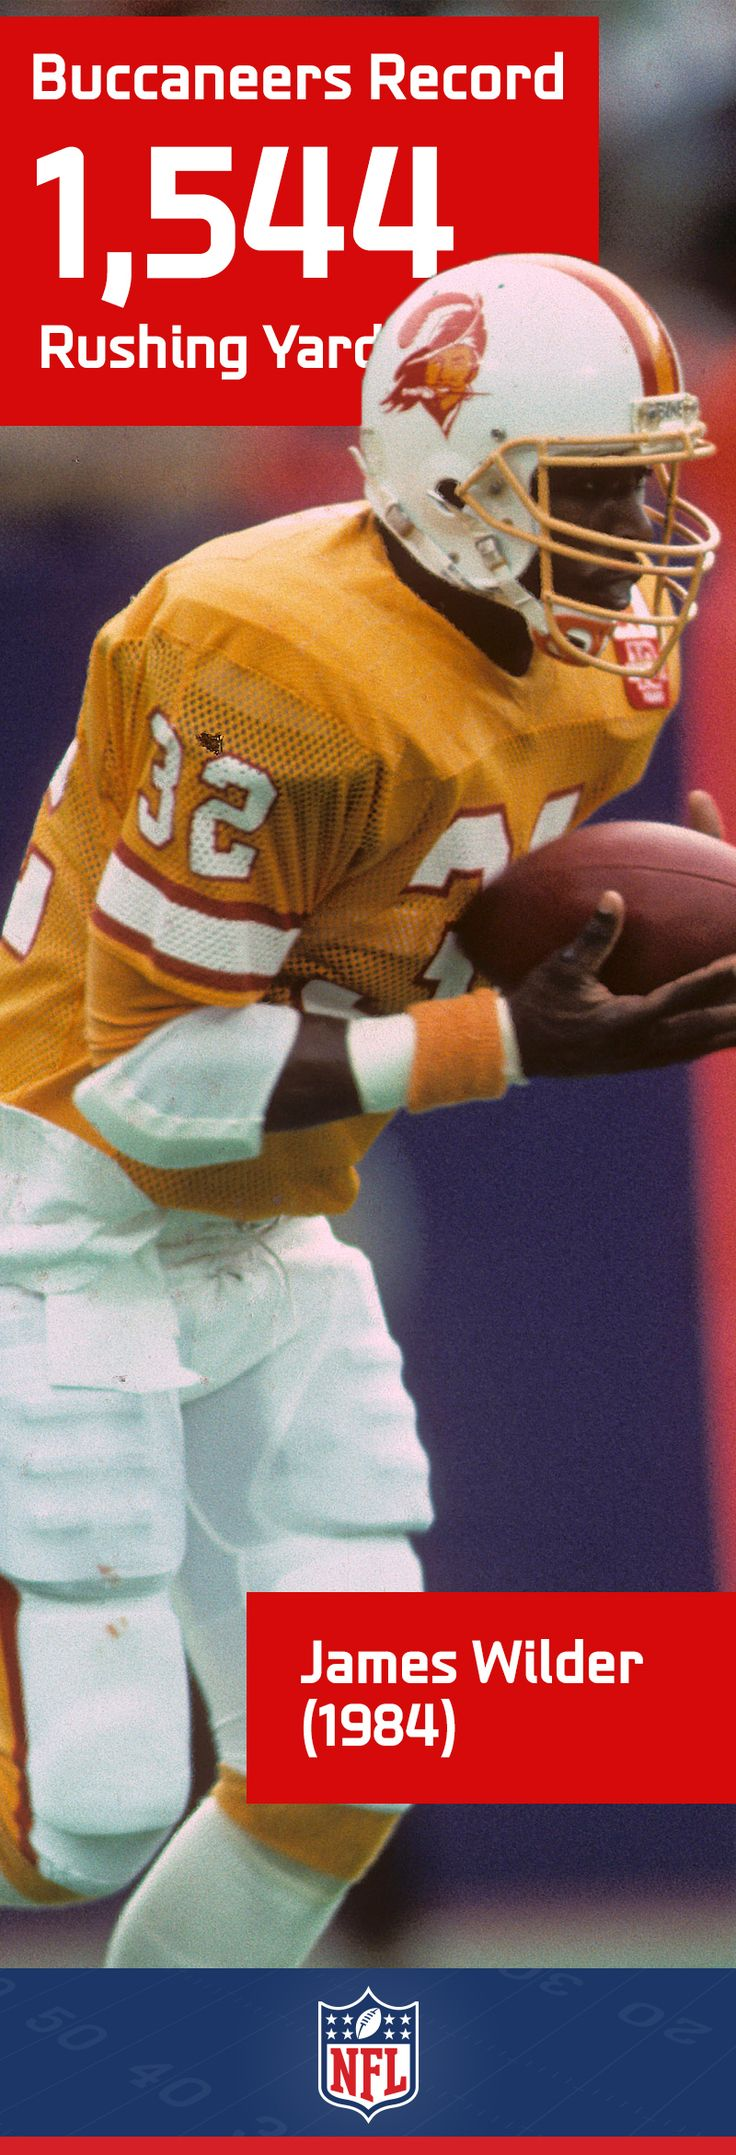 During the 1984 season, James Wilder also set the record for carries with 407 and touches with 492.